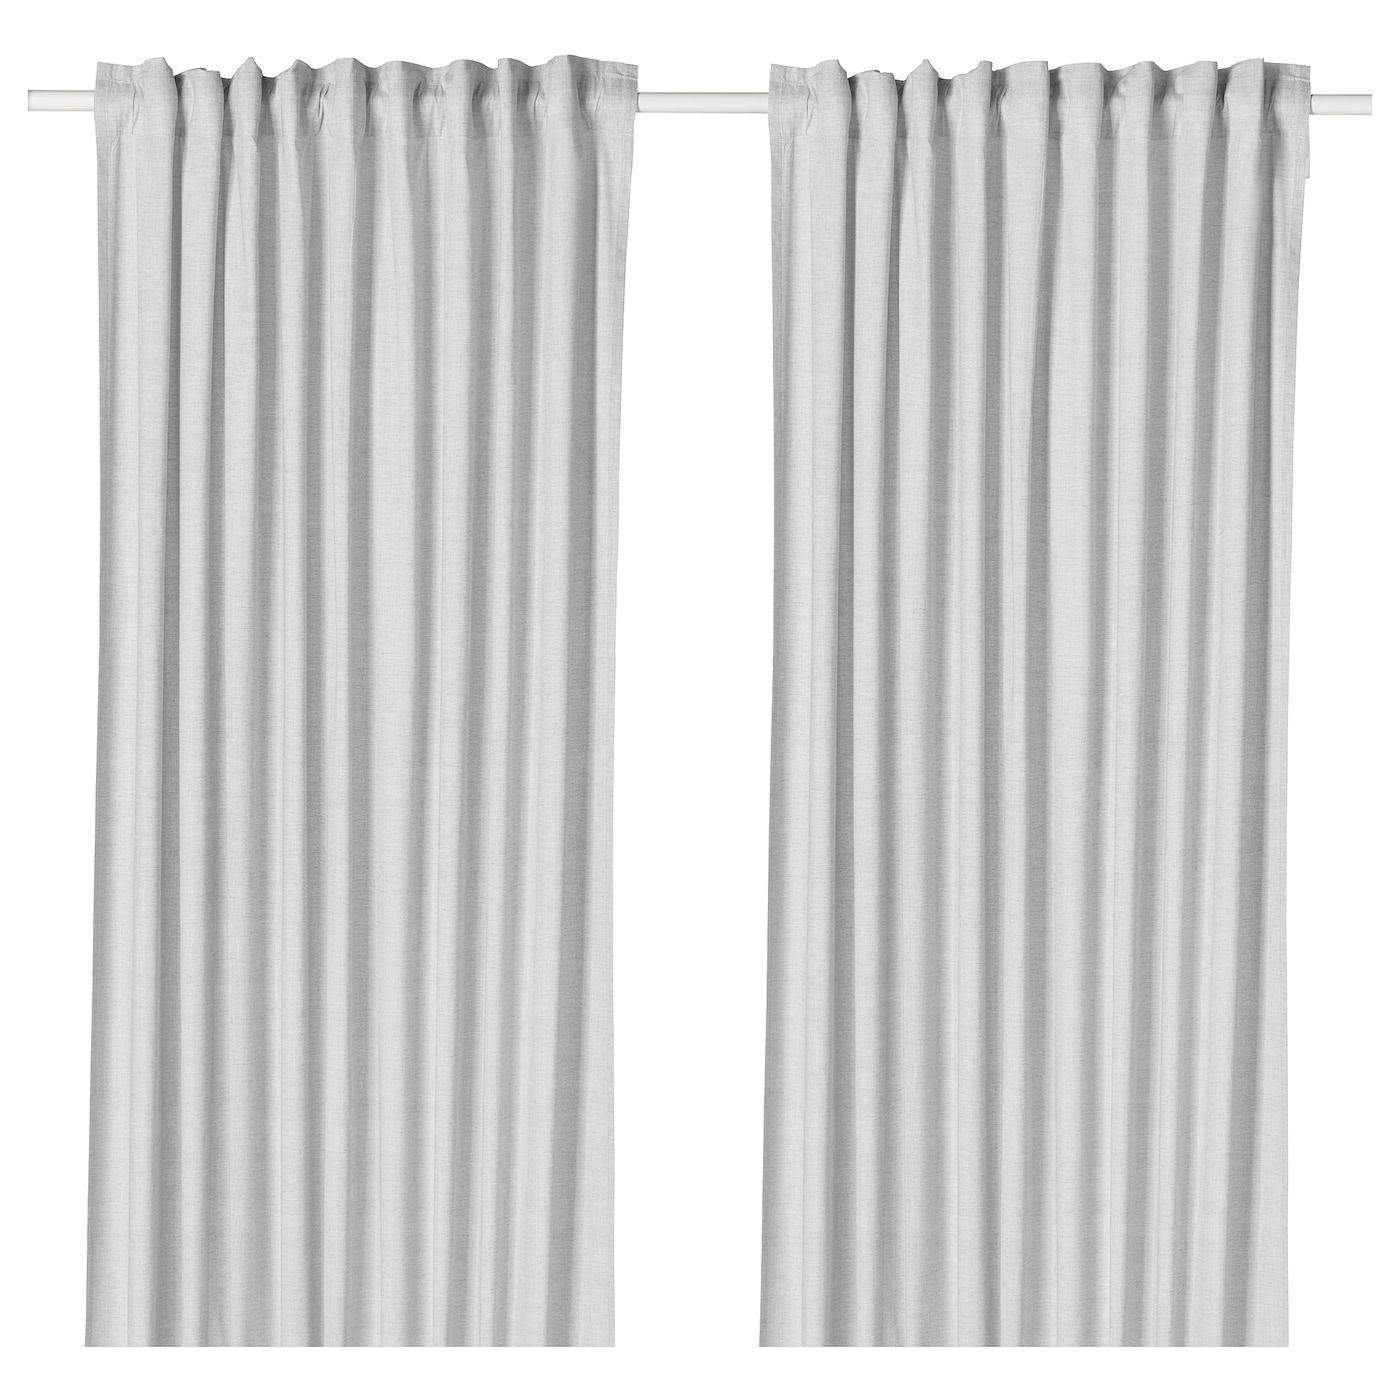 GlansnÄva Curtain Liners 1 Pair Light Gray 56x94 - Ikea Gardinenstange Vidga Video